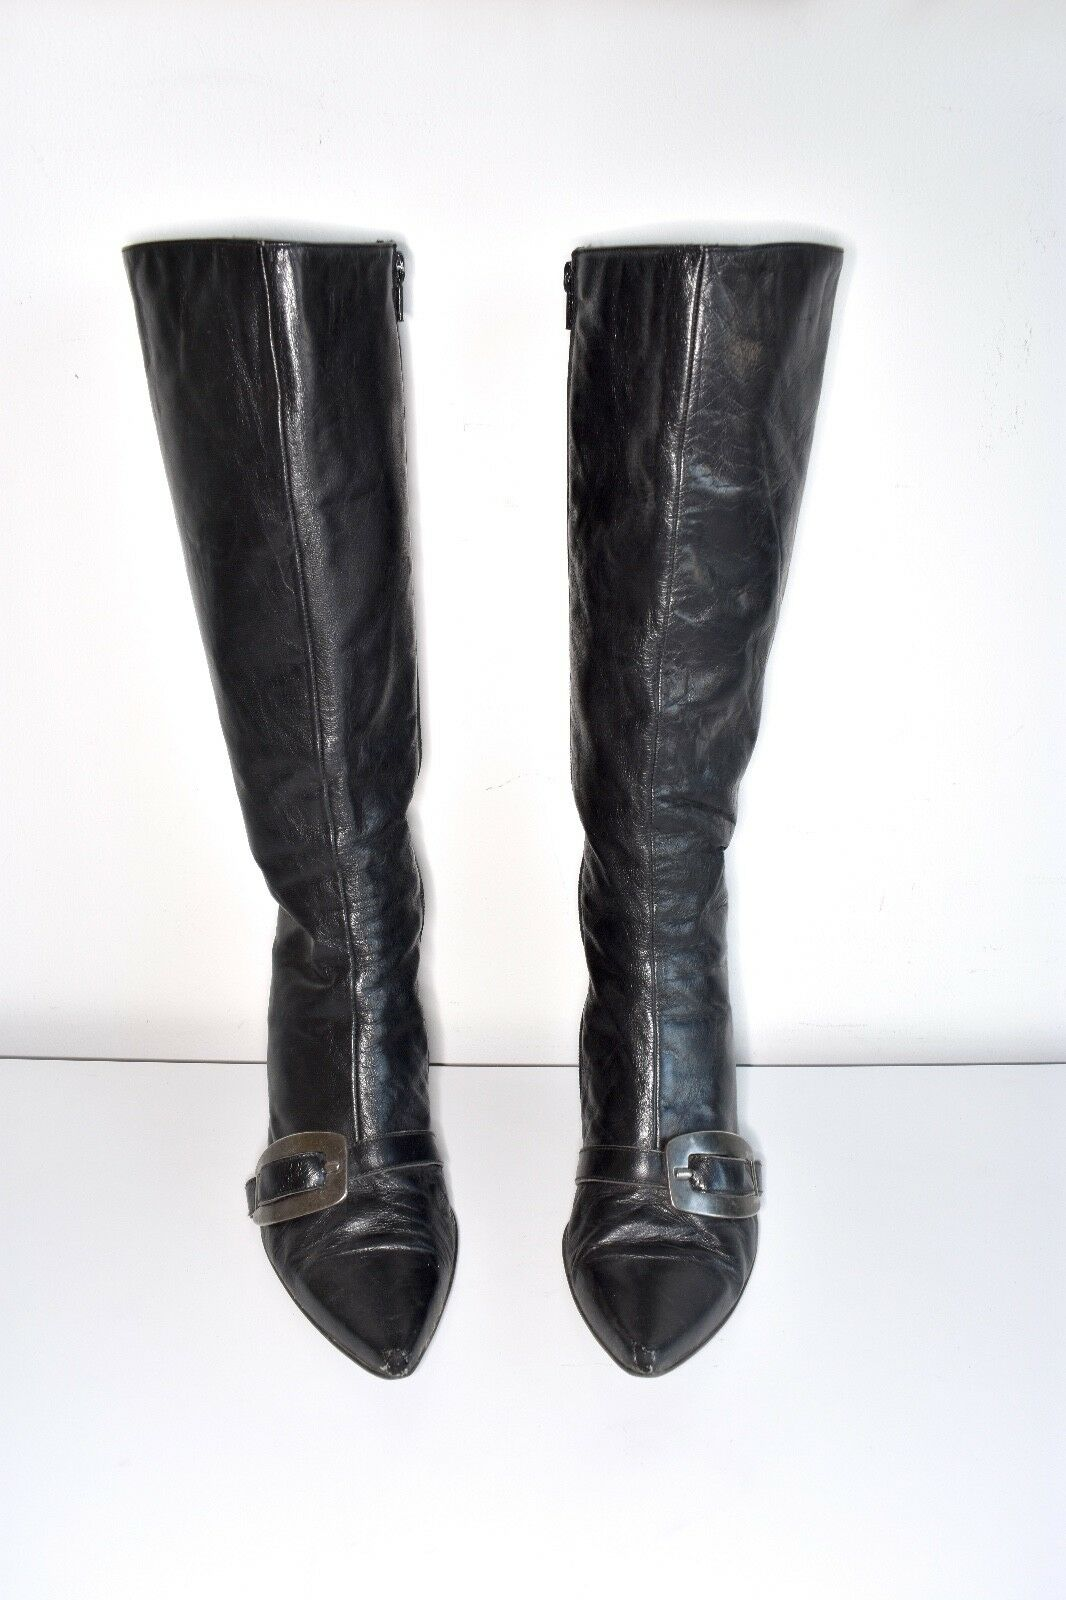 tolle stiefel boots mit schnalle 90s 2000s 39 - 40 JOHN GALLIANO